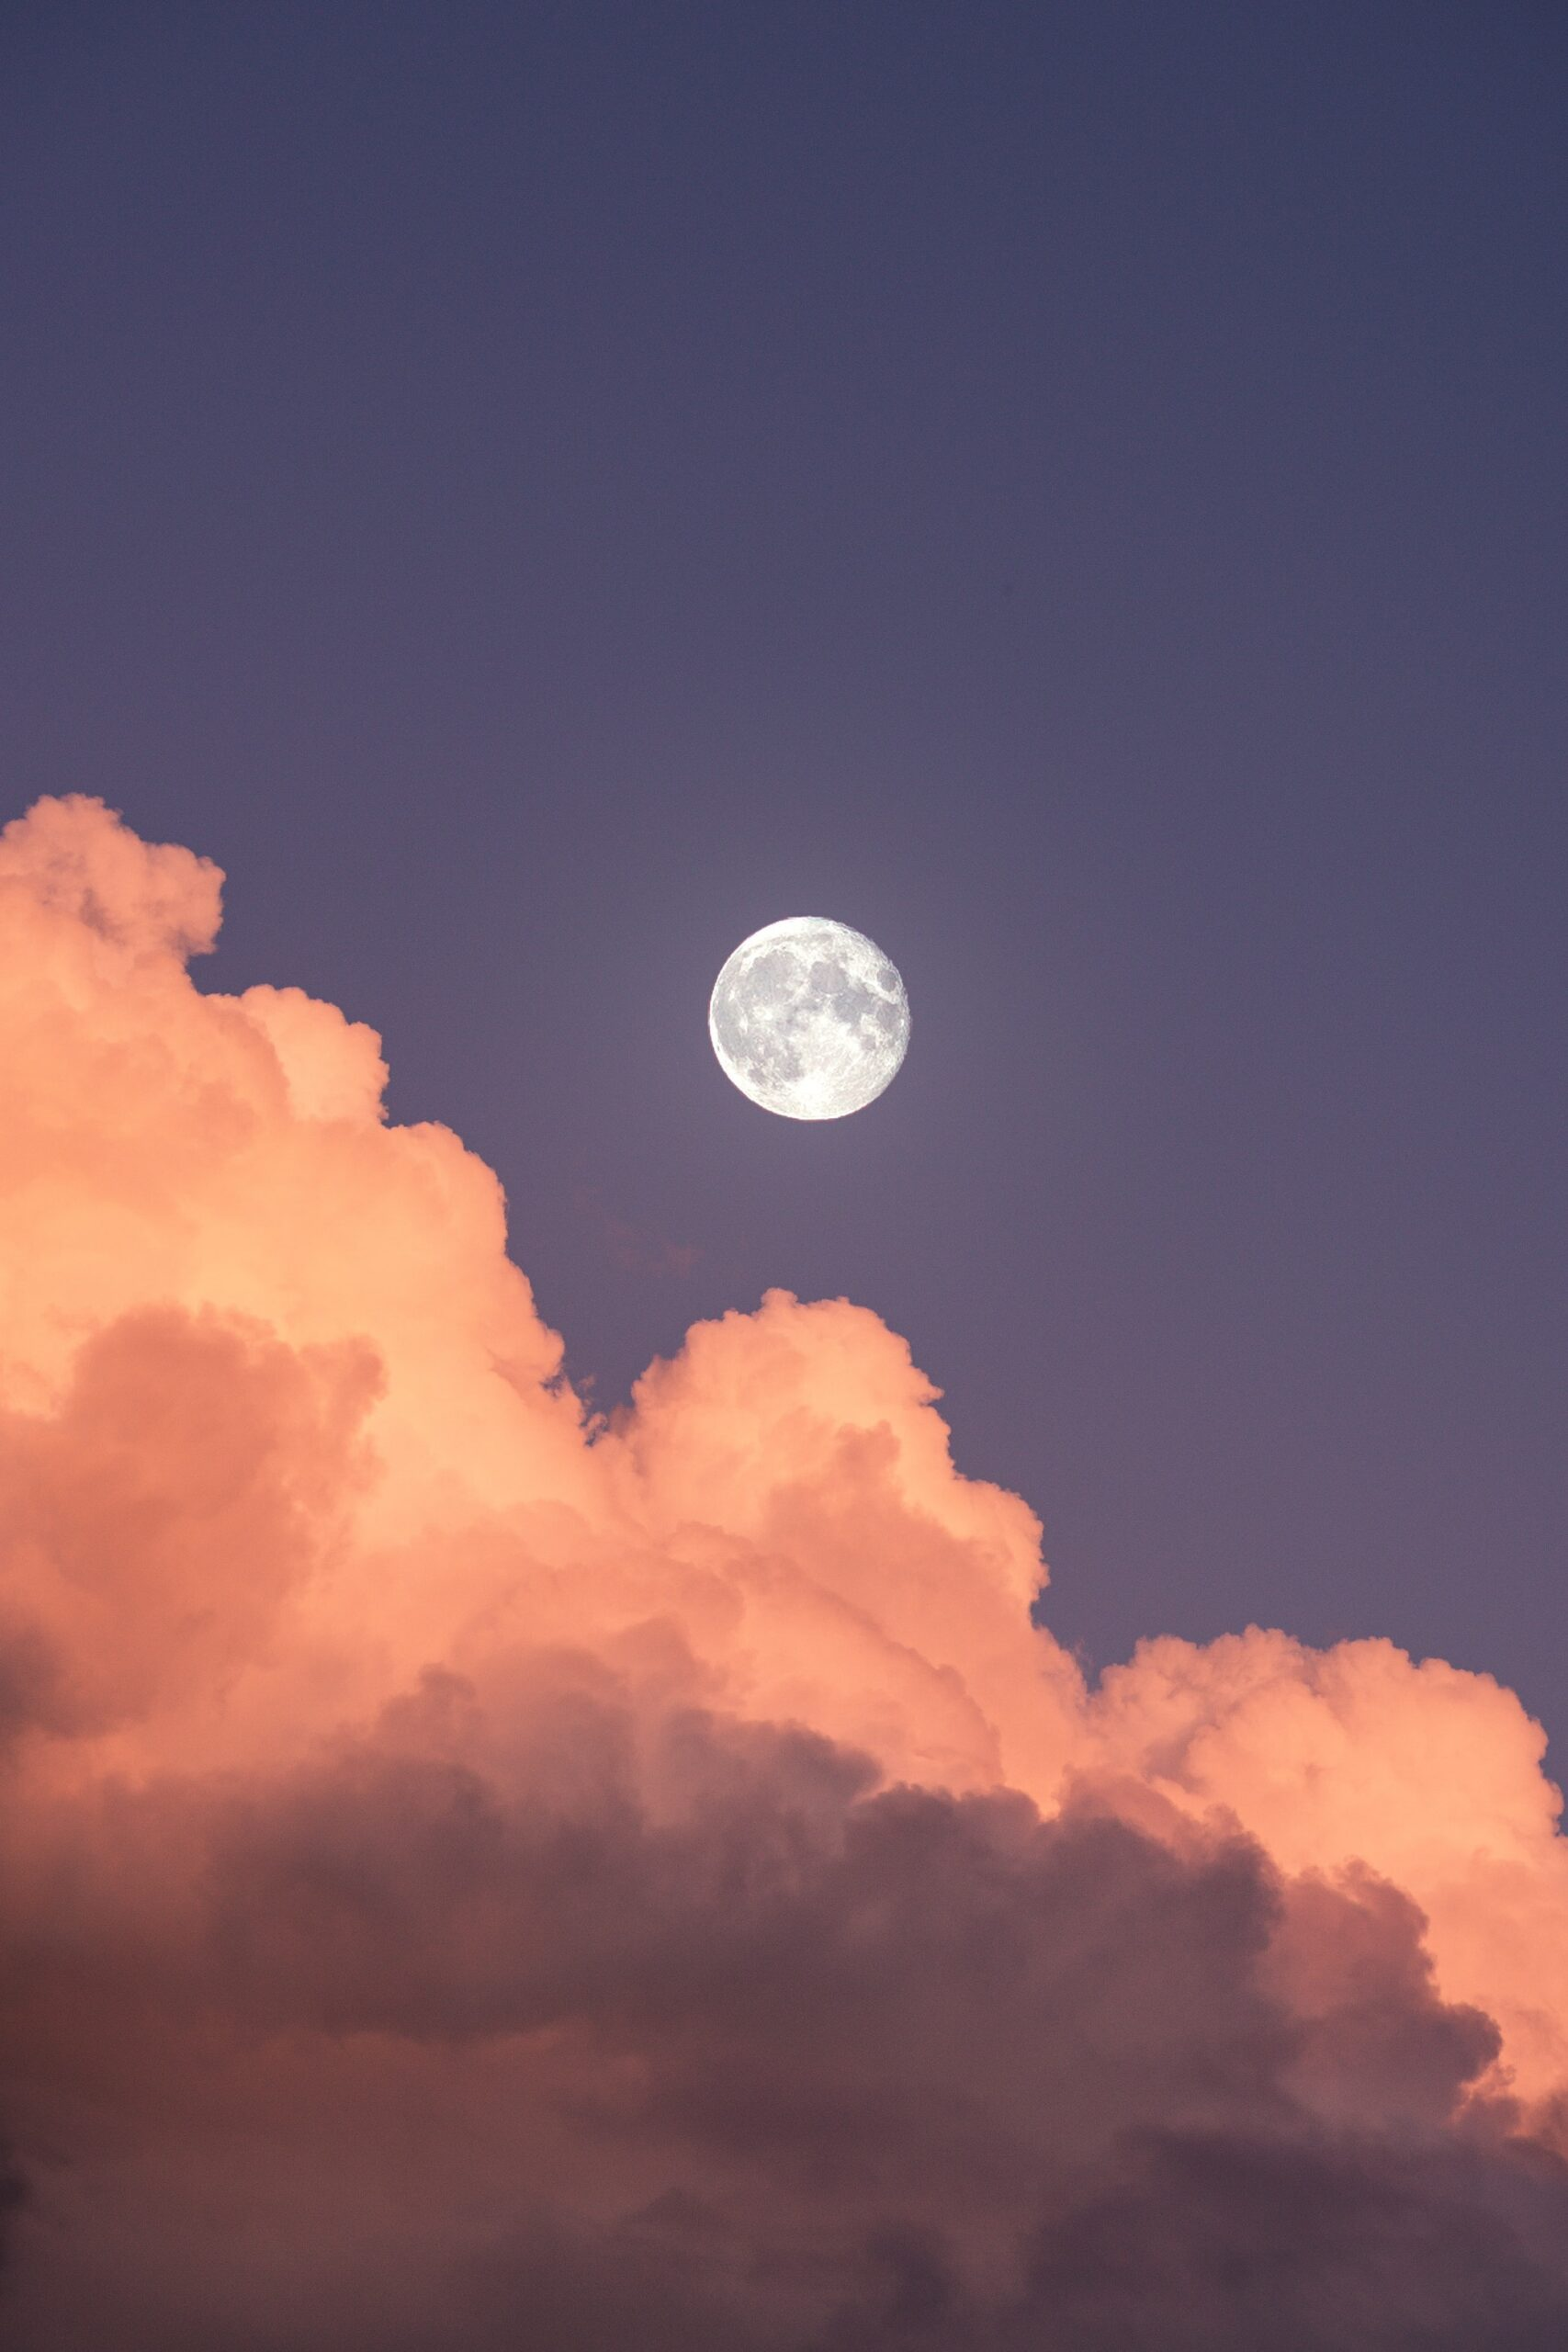 Moon above the clouds by Ingmar from Unsplash